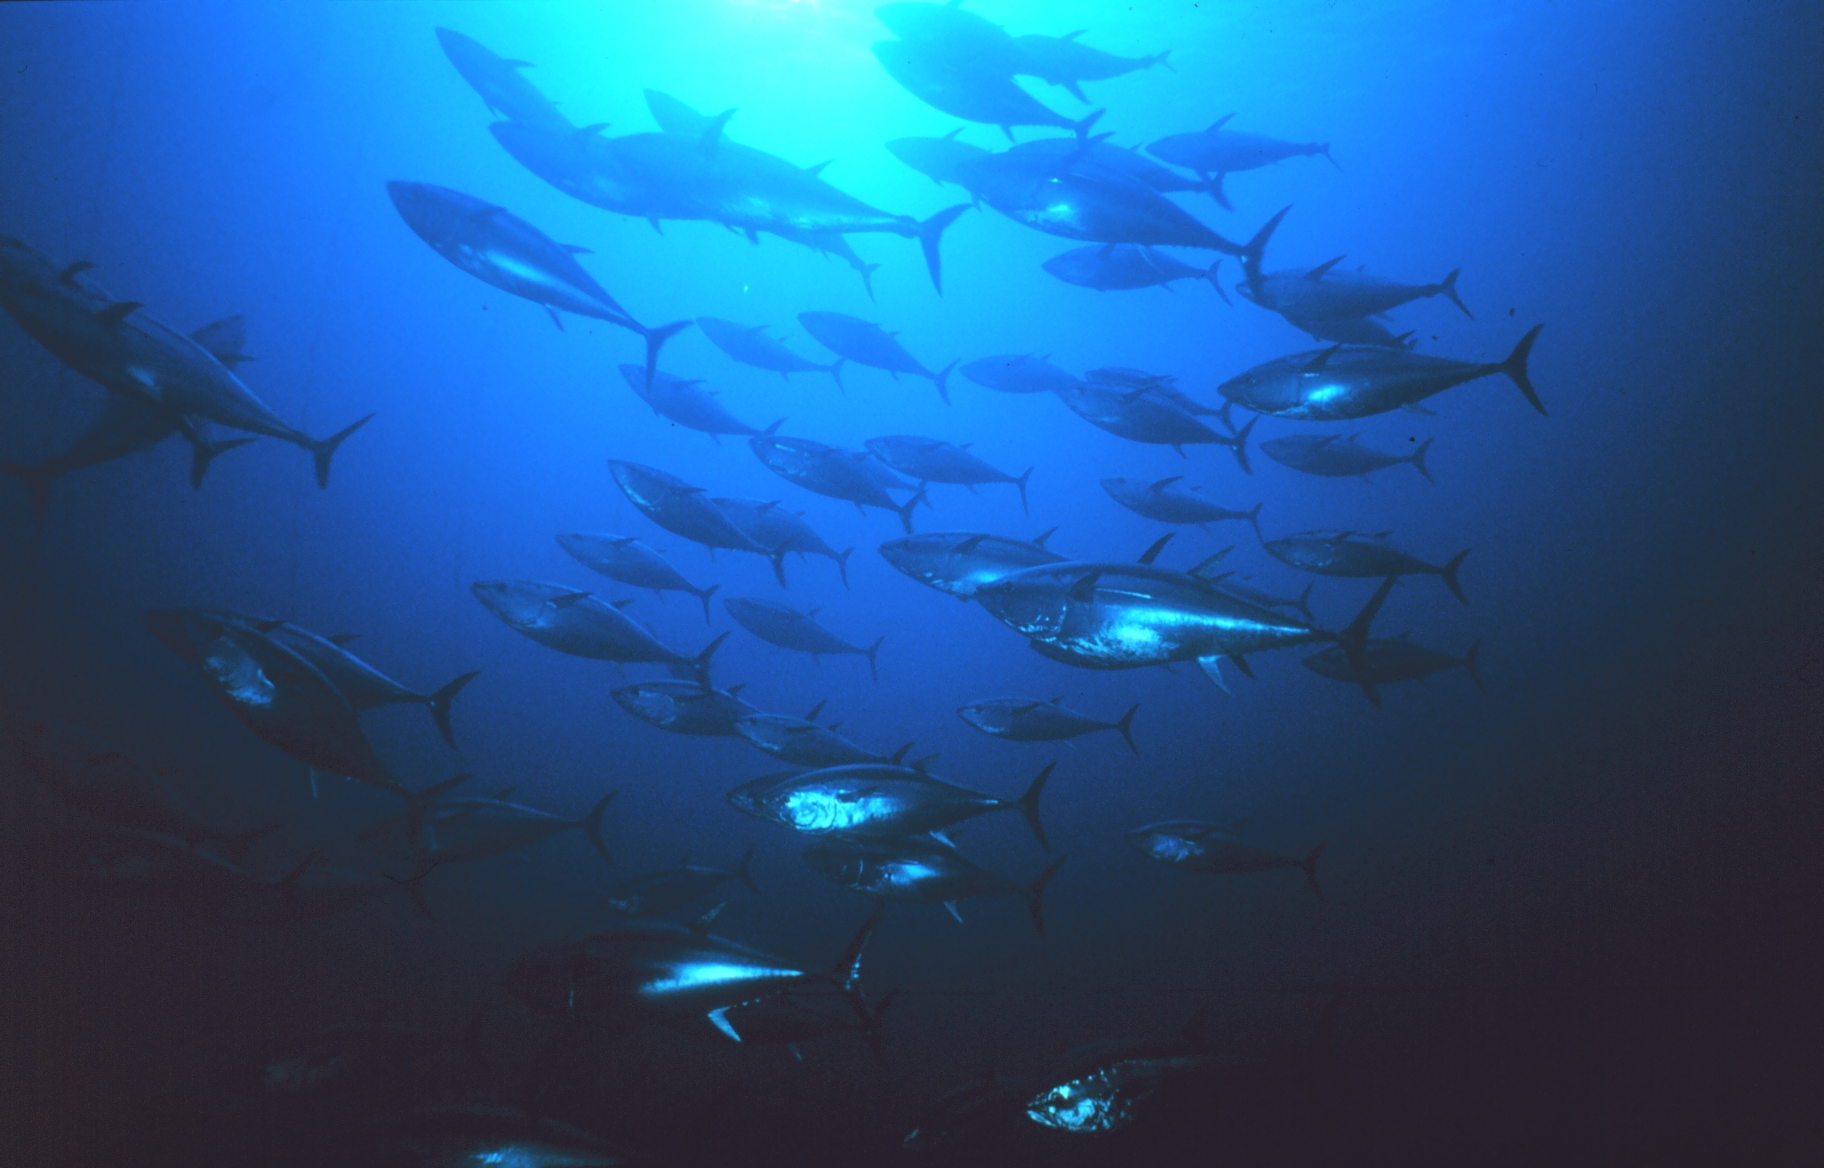 School of bluefin tuna. Image credit: NOAA.